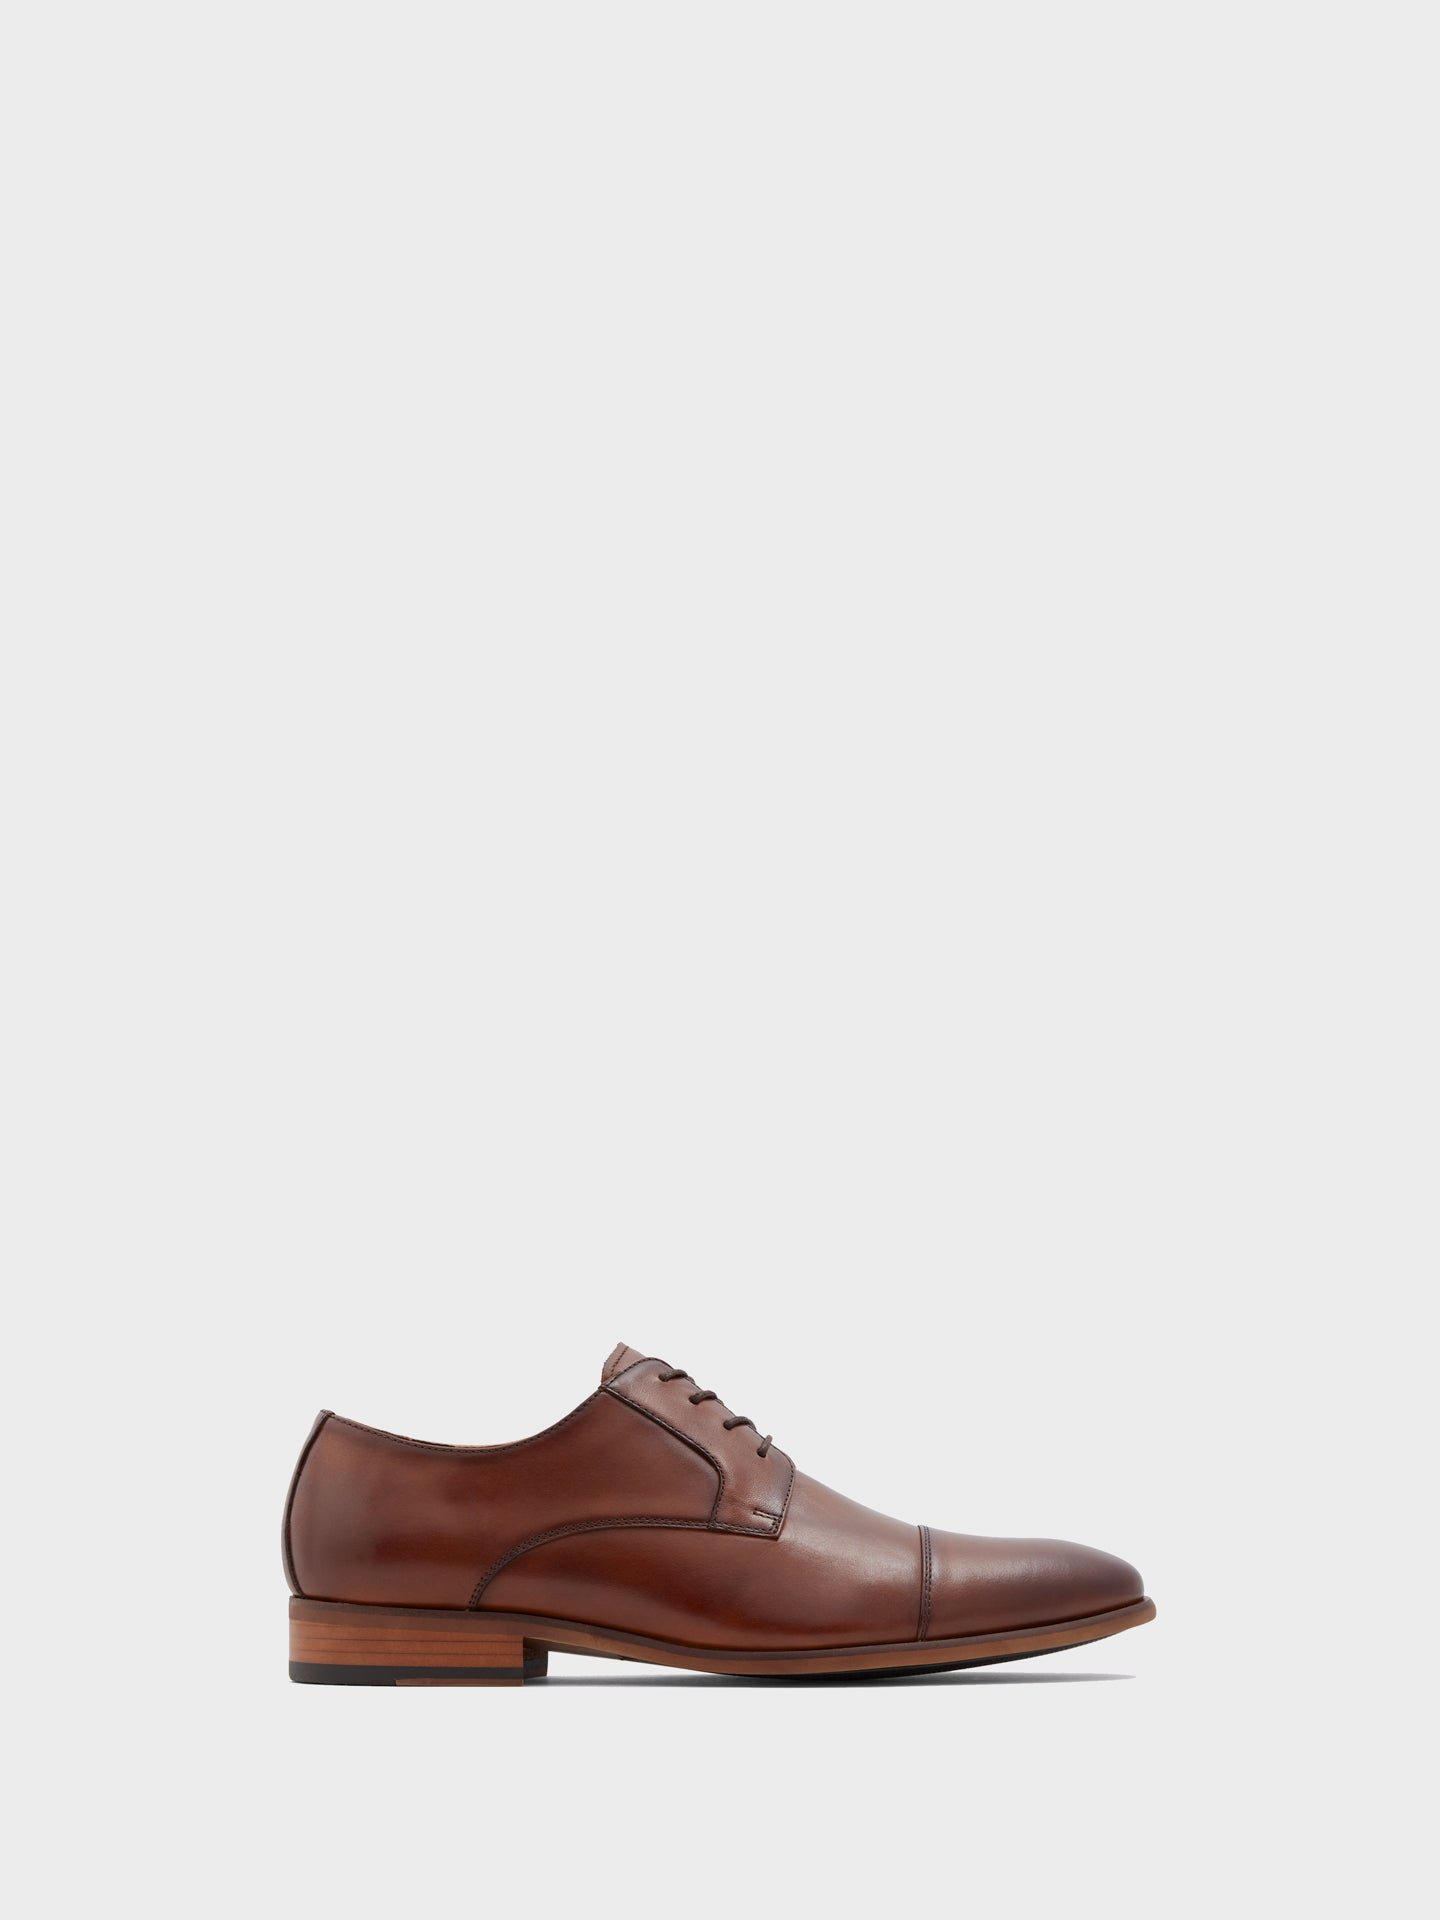 Aldo Brown Round Toe Shoes